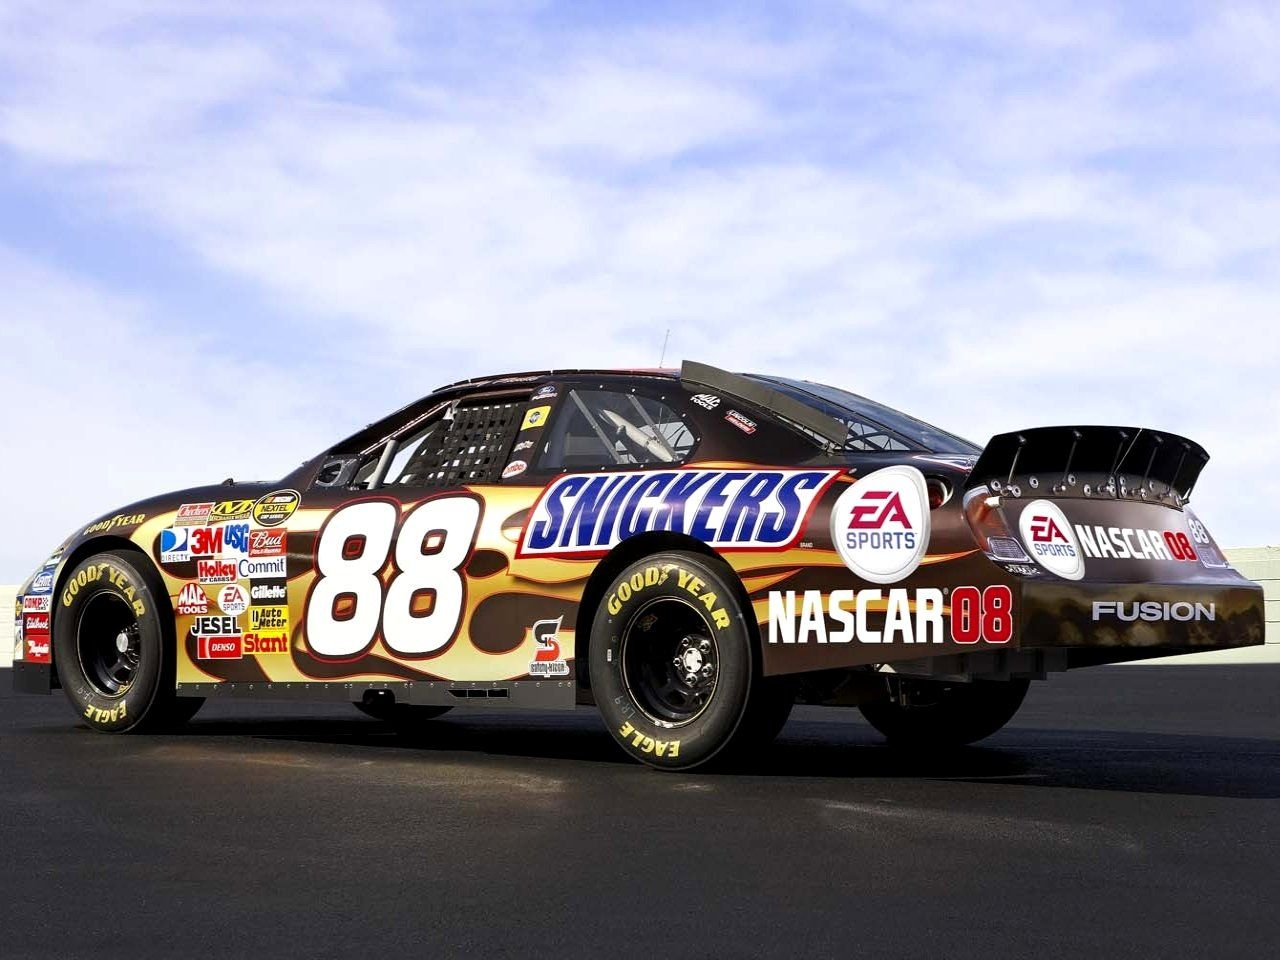 Auto Racing NASCAR Wallpaper Download